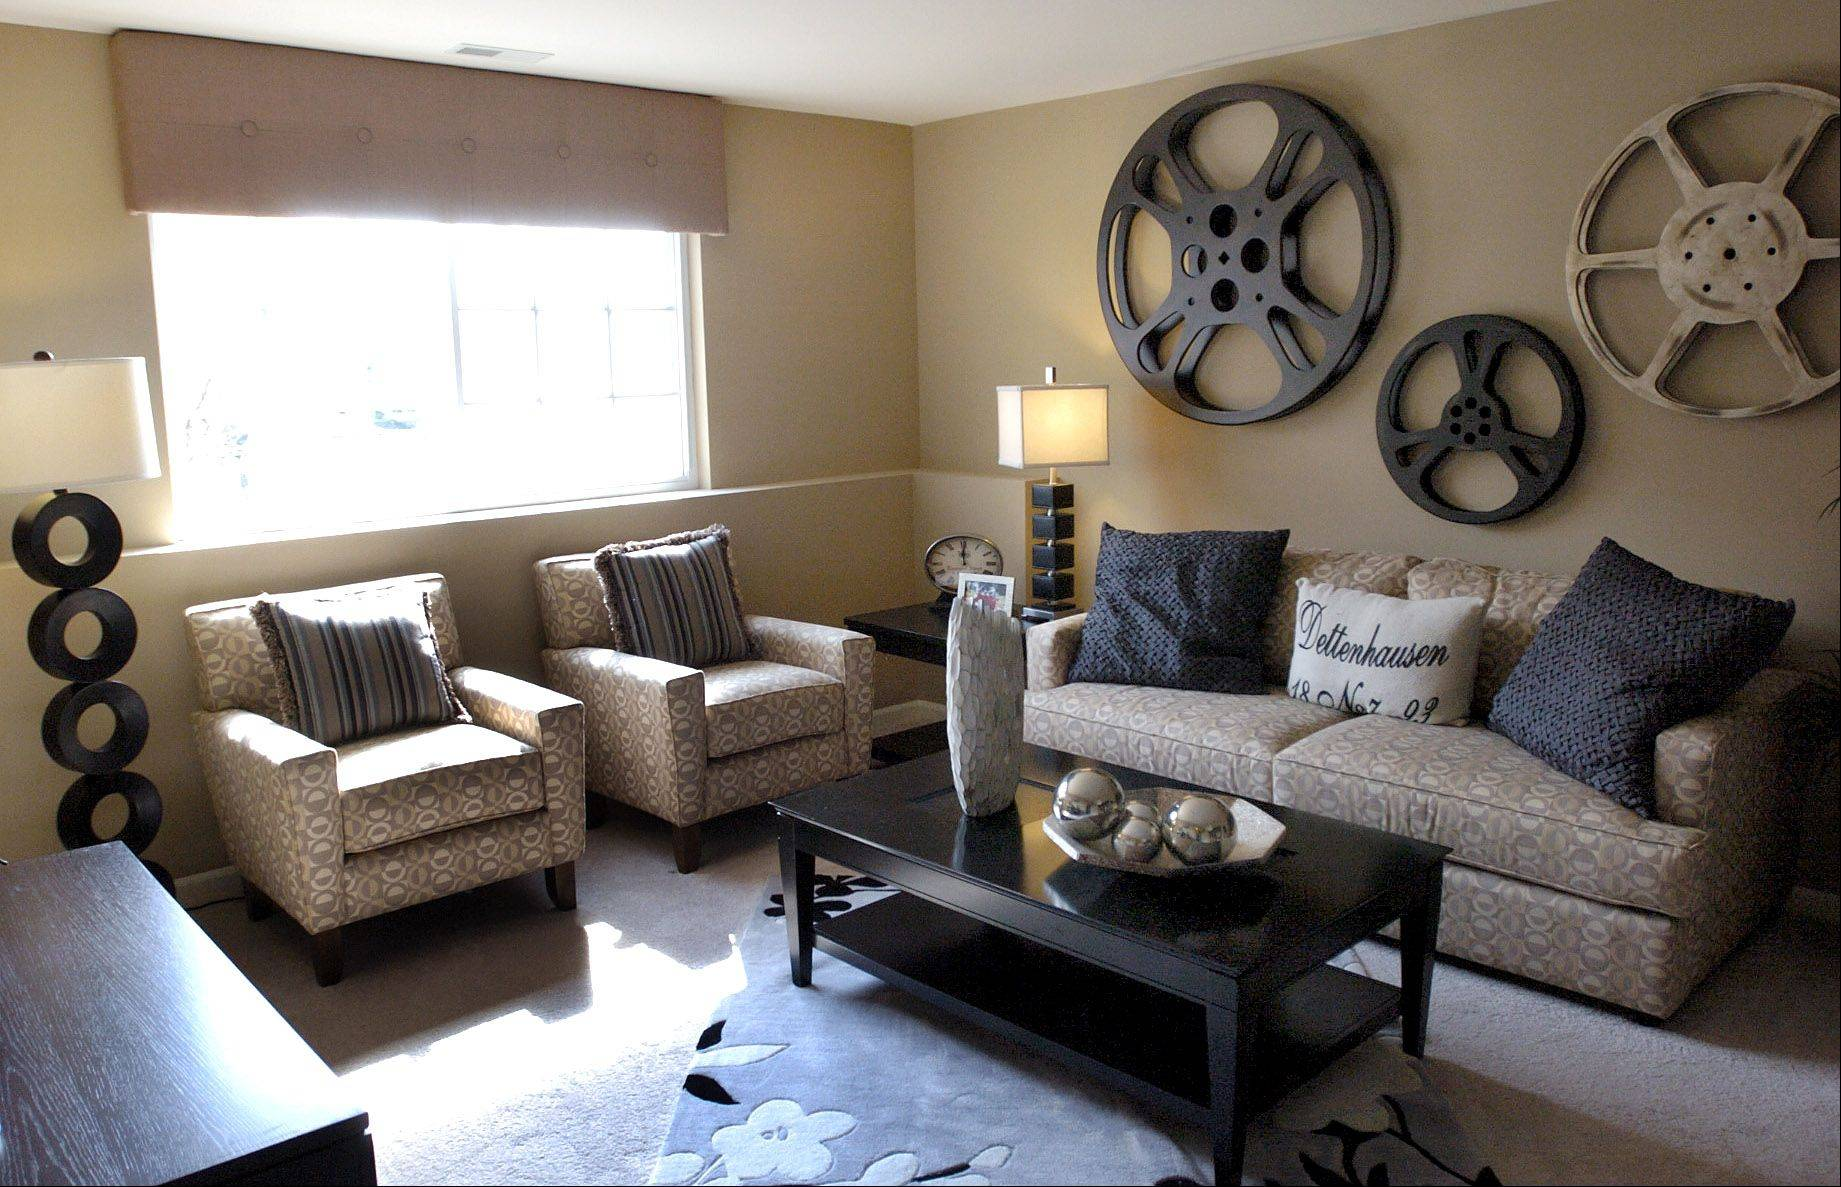 Lennar Corp. has extended its St. Patrick's Day sale through the end of the month at Trafalgar Woods in Morton Grove. This is the downstairs family room in the Camden model at Trafalgar Woods.